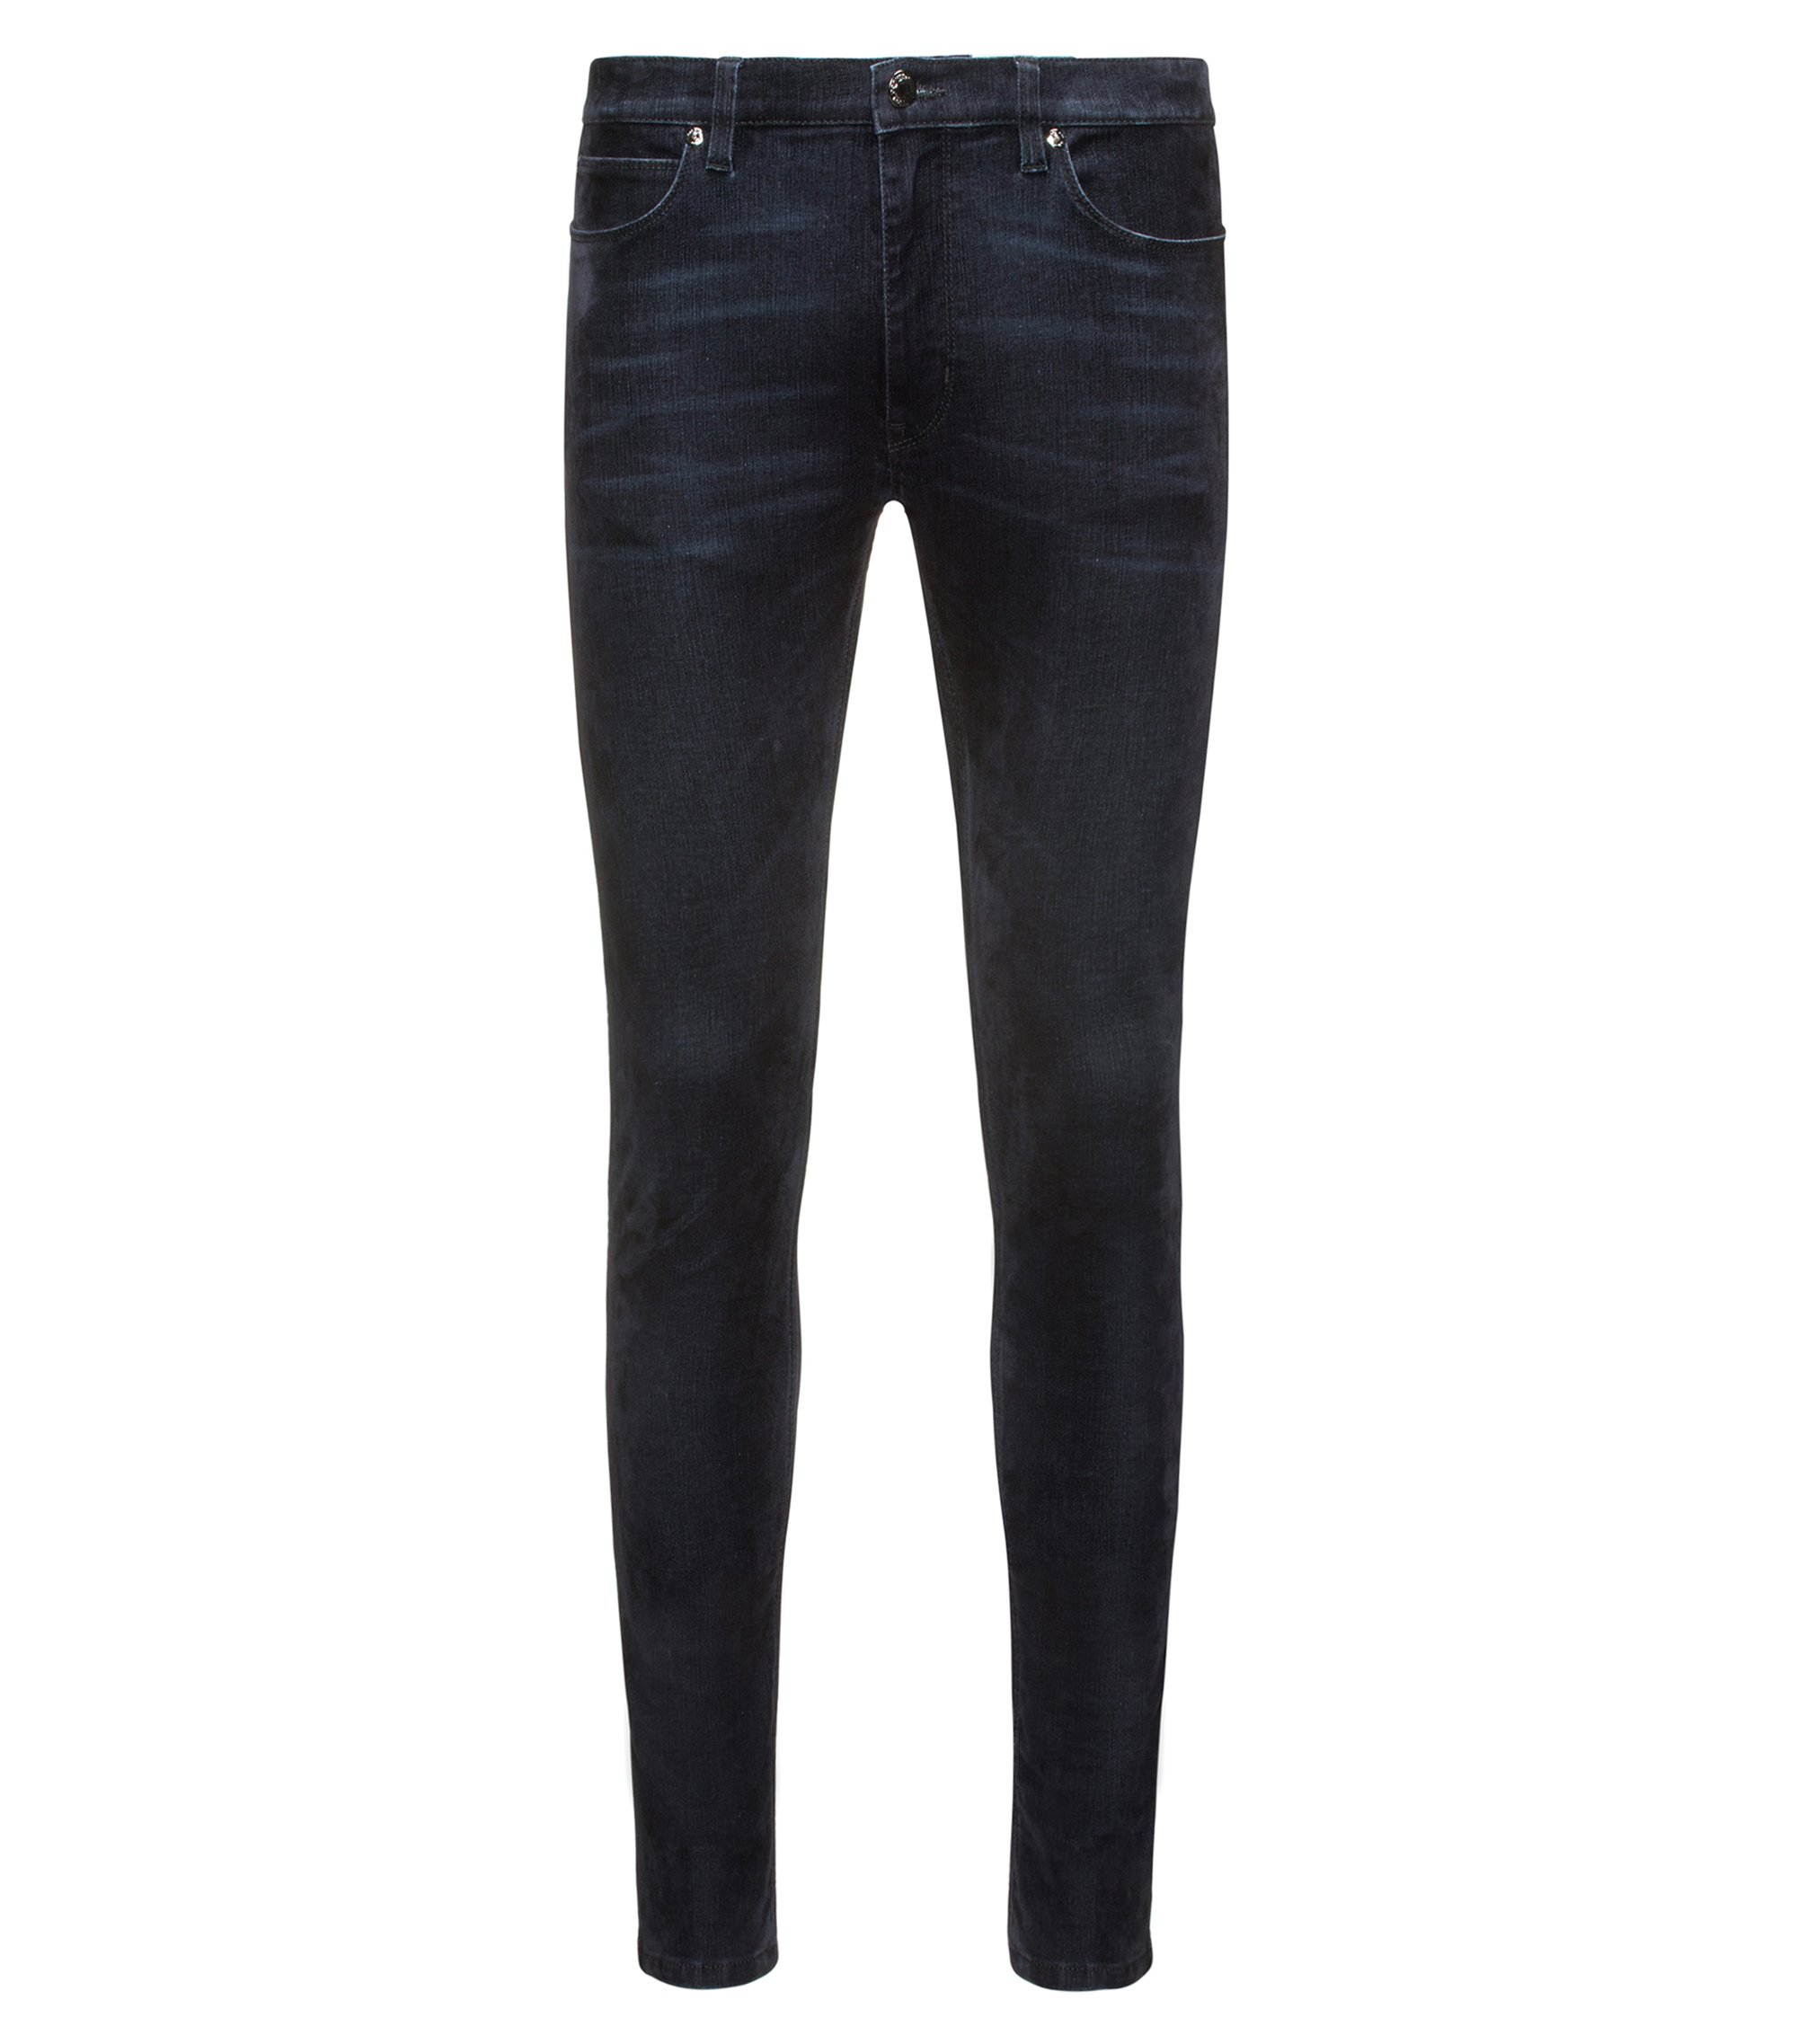 Skinny-Fit Jeans aus Stretch-Denim mit Flockdruck, Dunkelblau